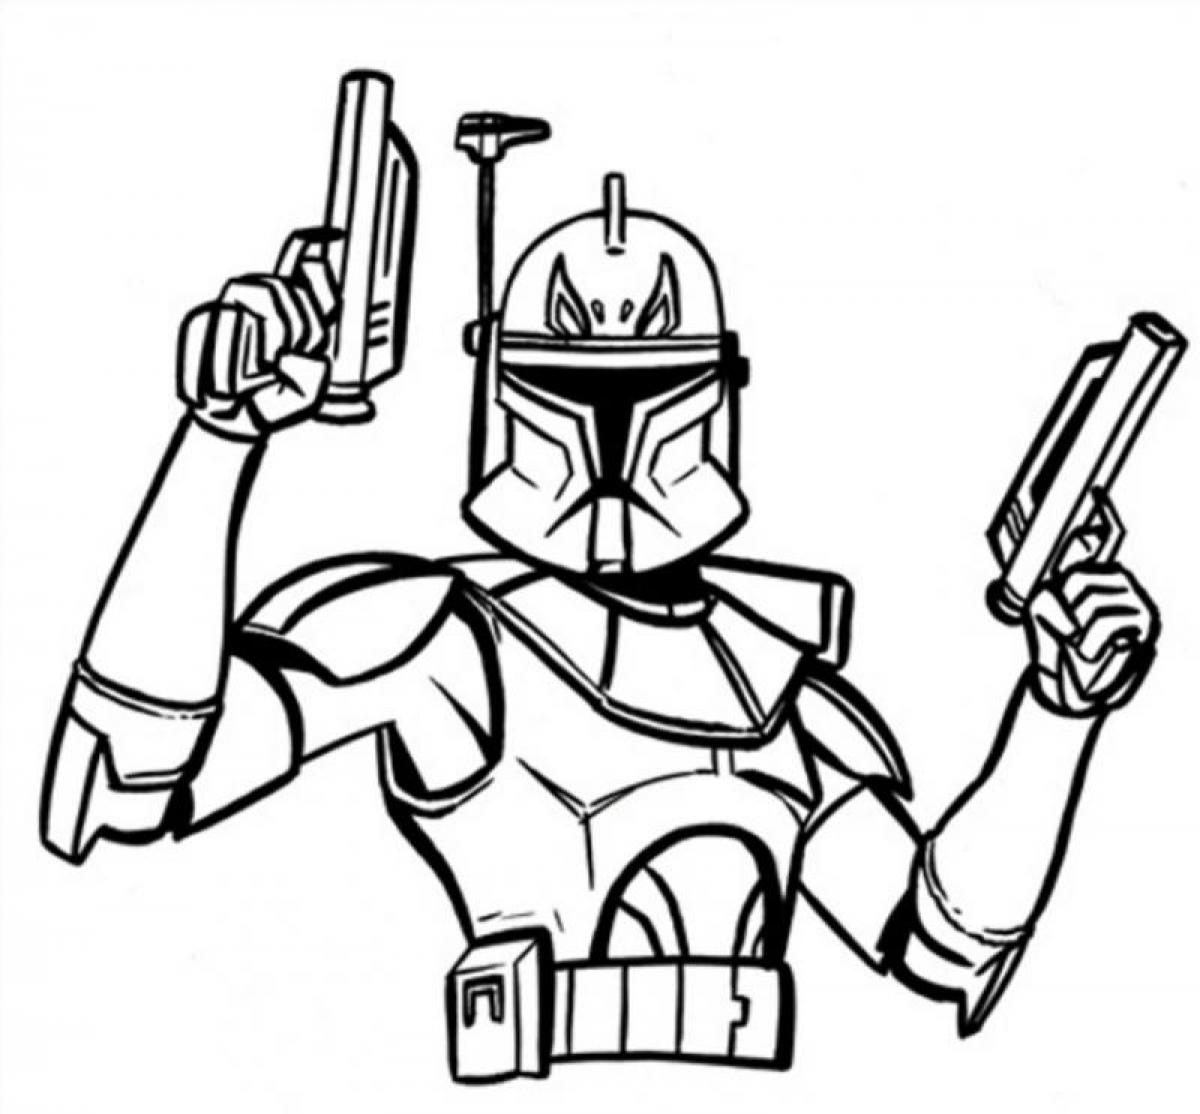 download wonderful captain rex star wars colouring pagesstar wars coloring print